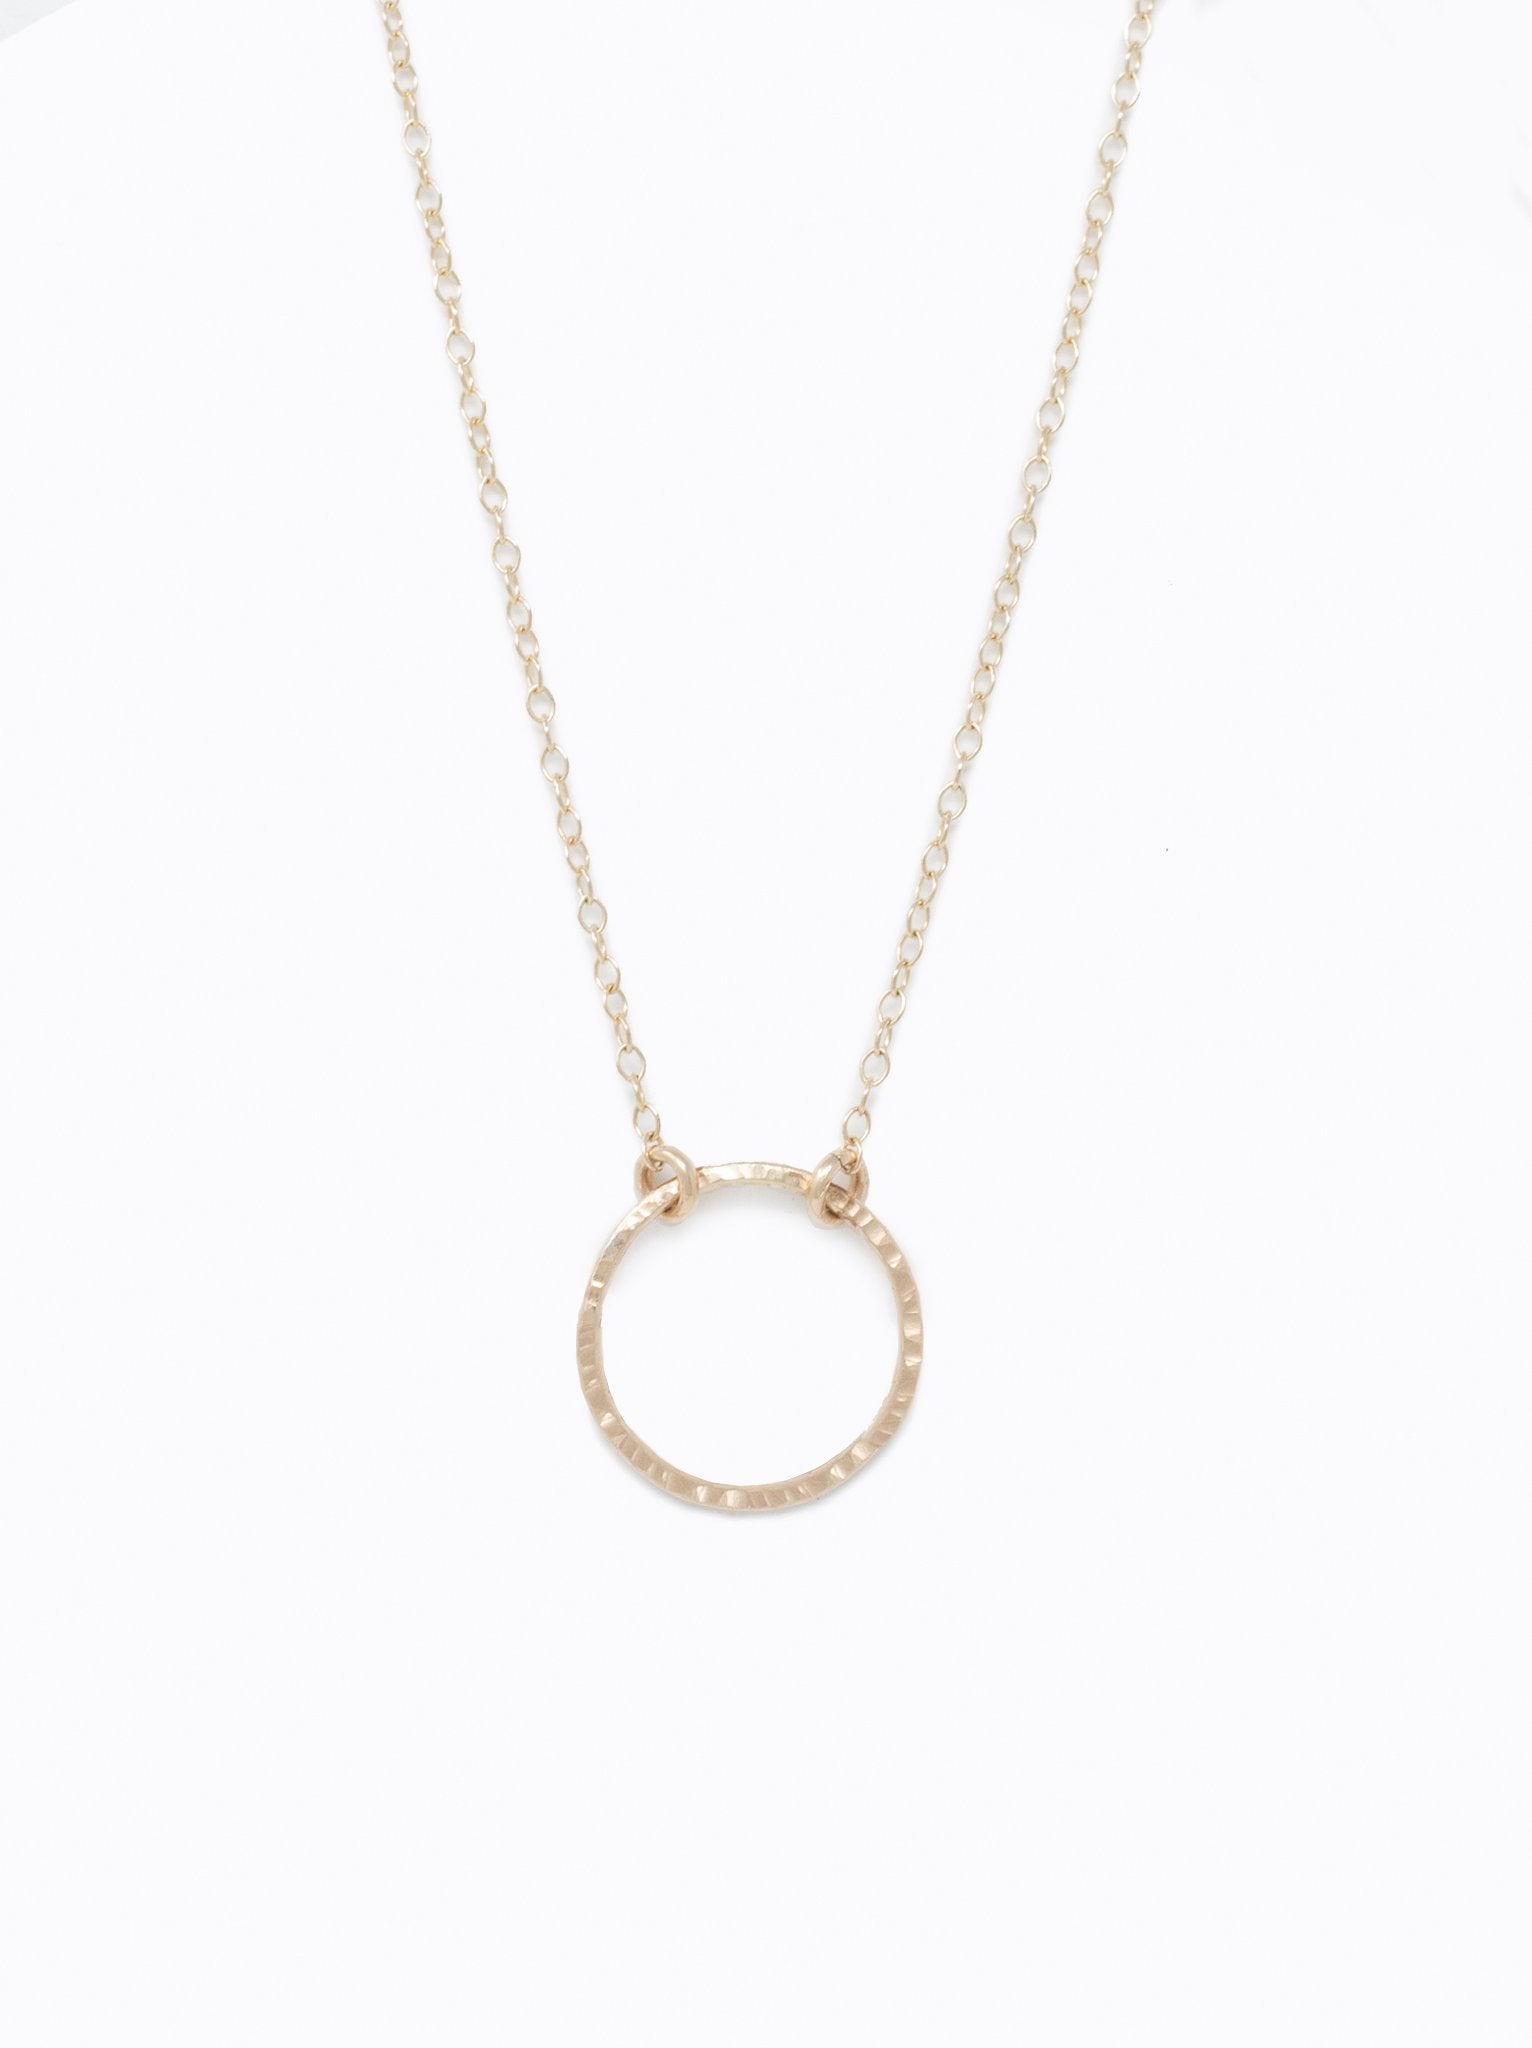 Floating Shape Necklace: Circle